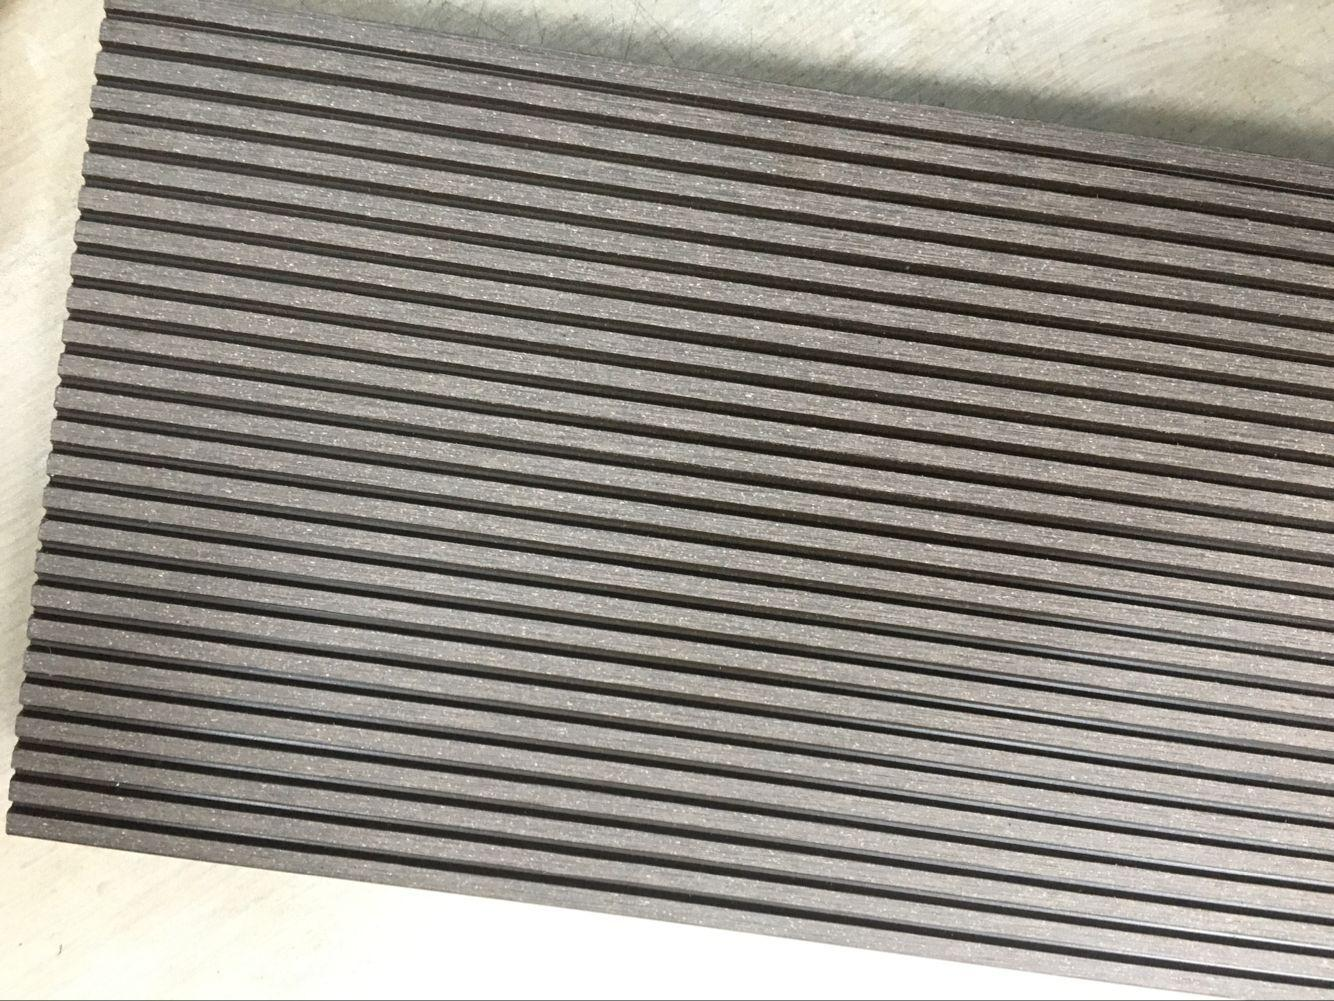 Waterproof and non-cracked wpc outdoor and indoor decking 5